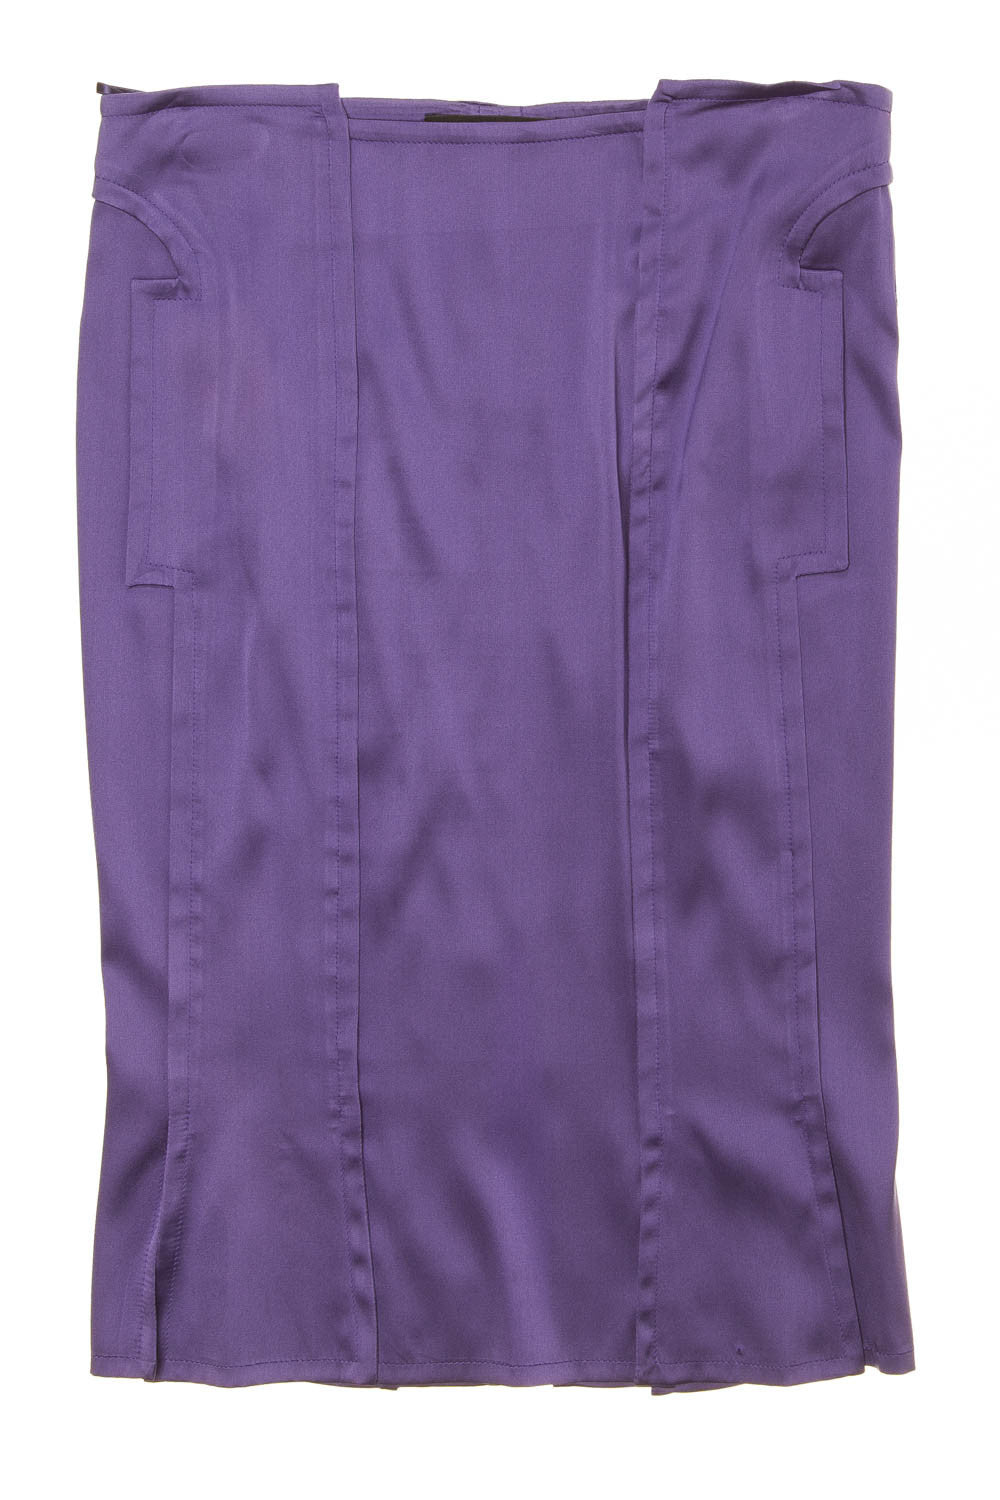 Iconic Tom Ford For Gucci - Purple Pencil Skirt - IT 40